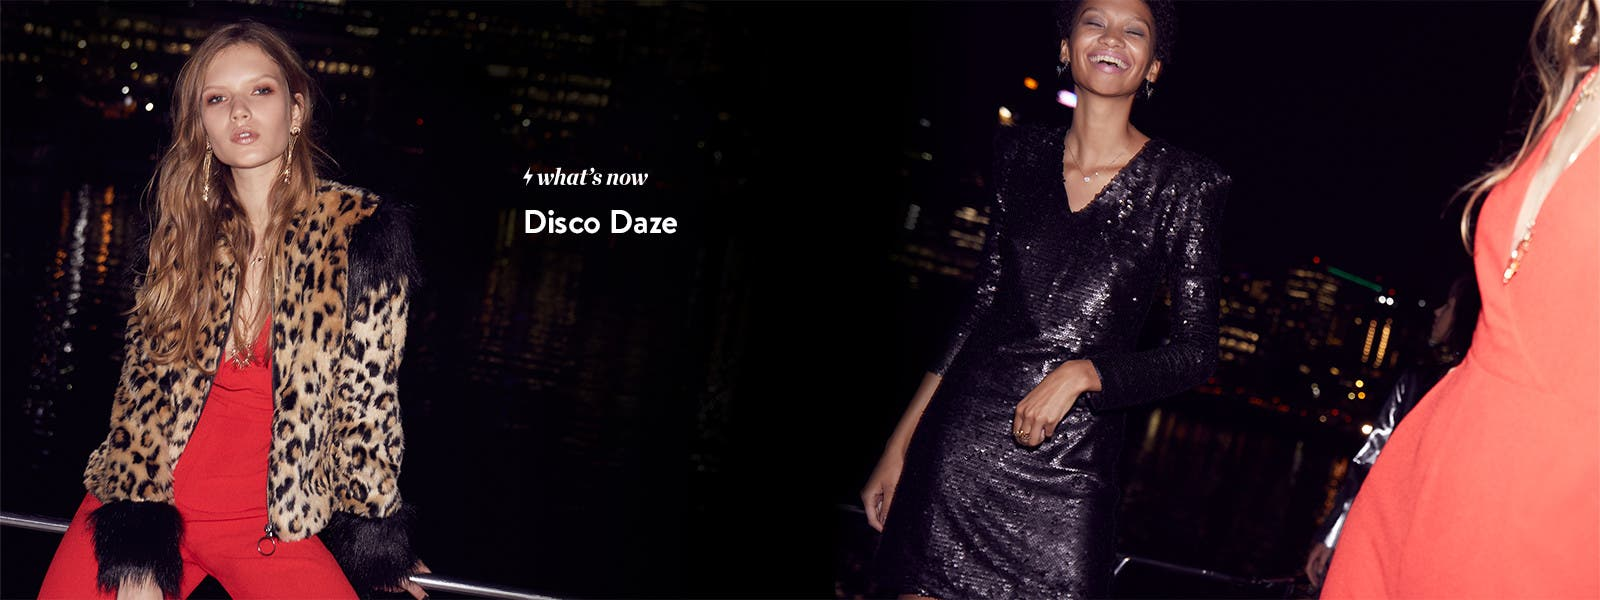 Disco daze trend: shine, animal prints, statement pieces.